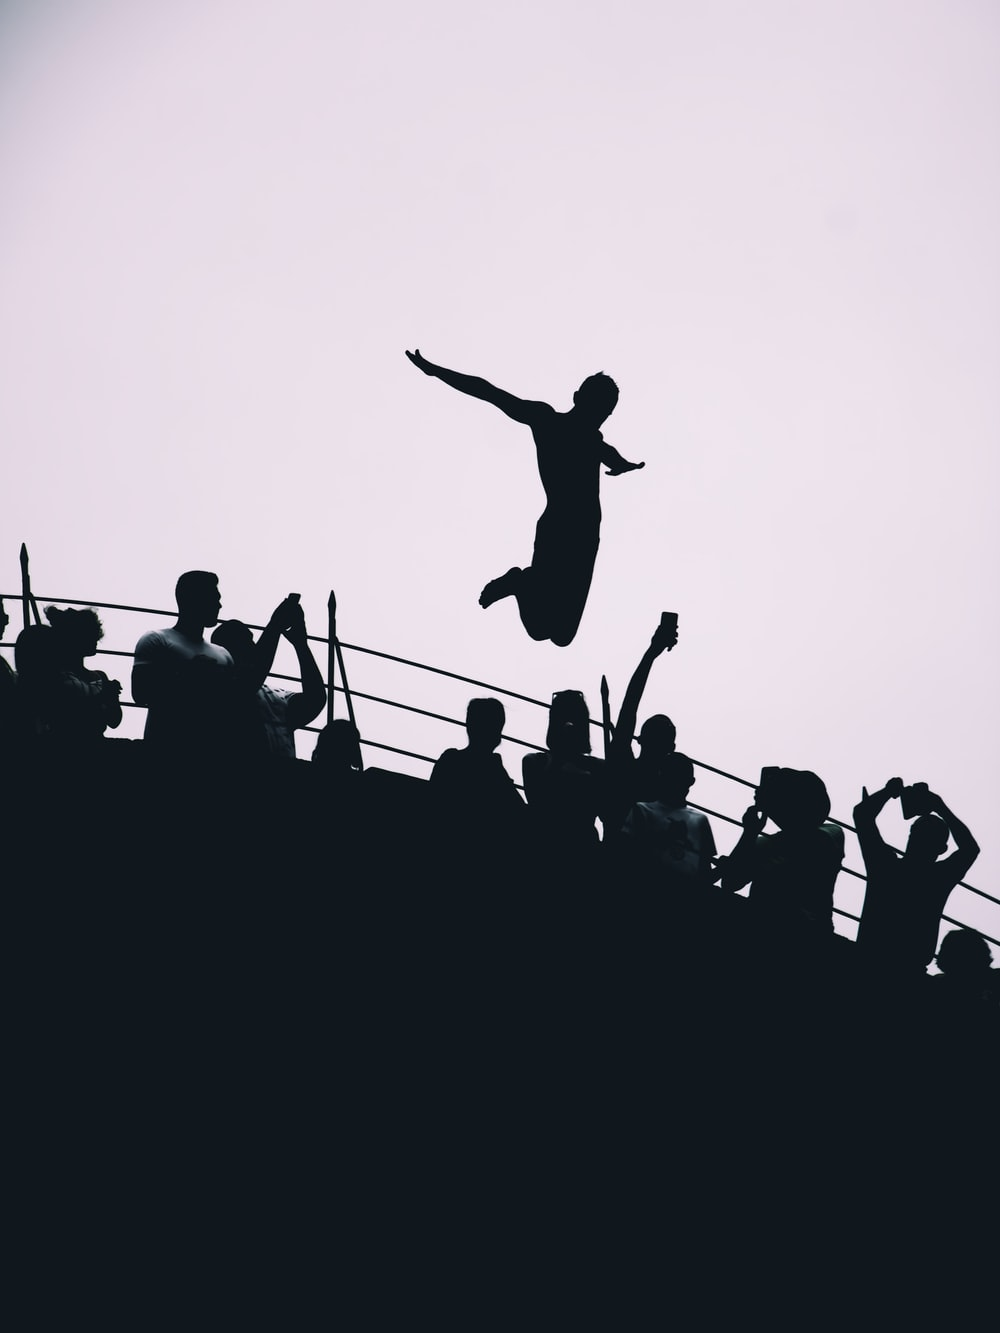 silhouette of people jumping during daytime